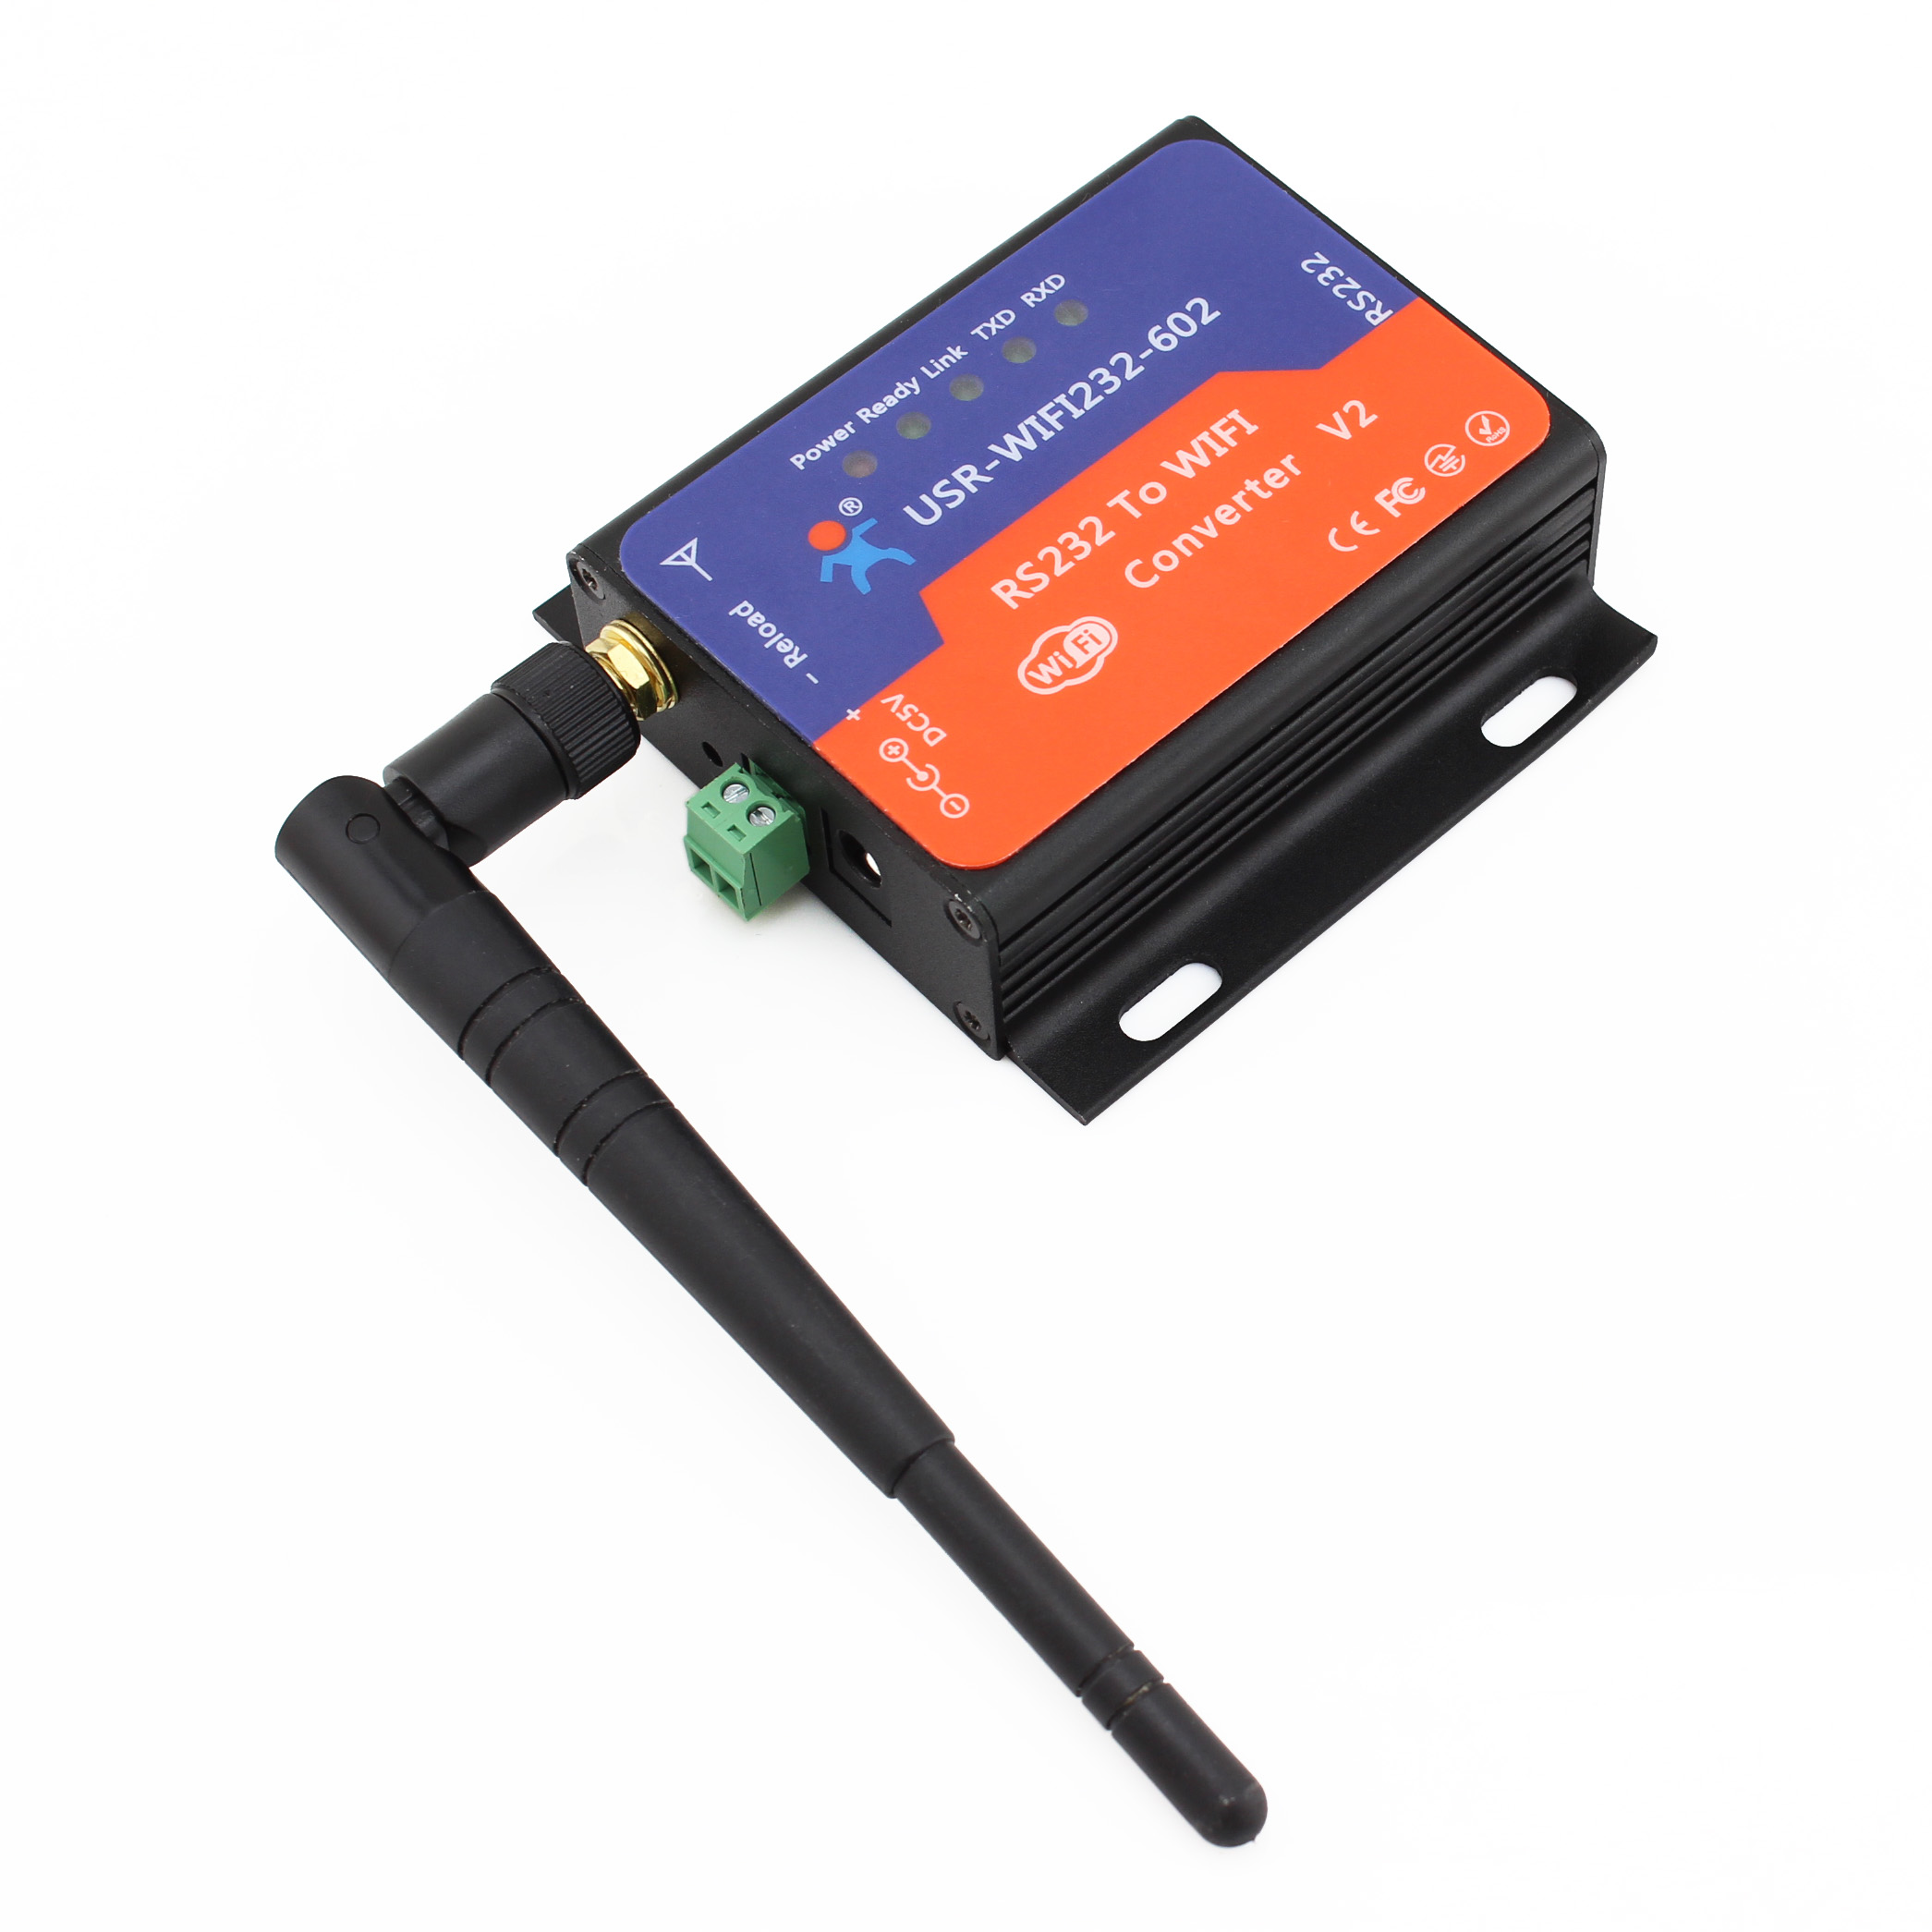 USR-WIFI232-602 V2 RS232 WIFI converters RS232 to Wireless 802.11 b/g/n Converters with Router Function Q00196